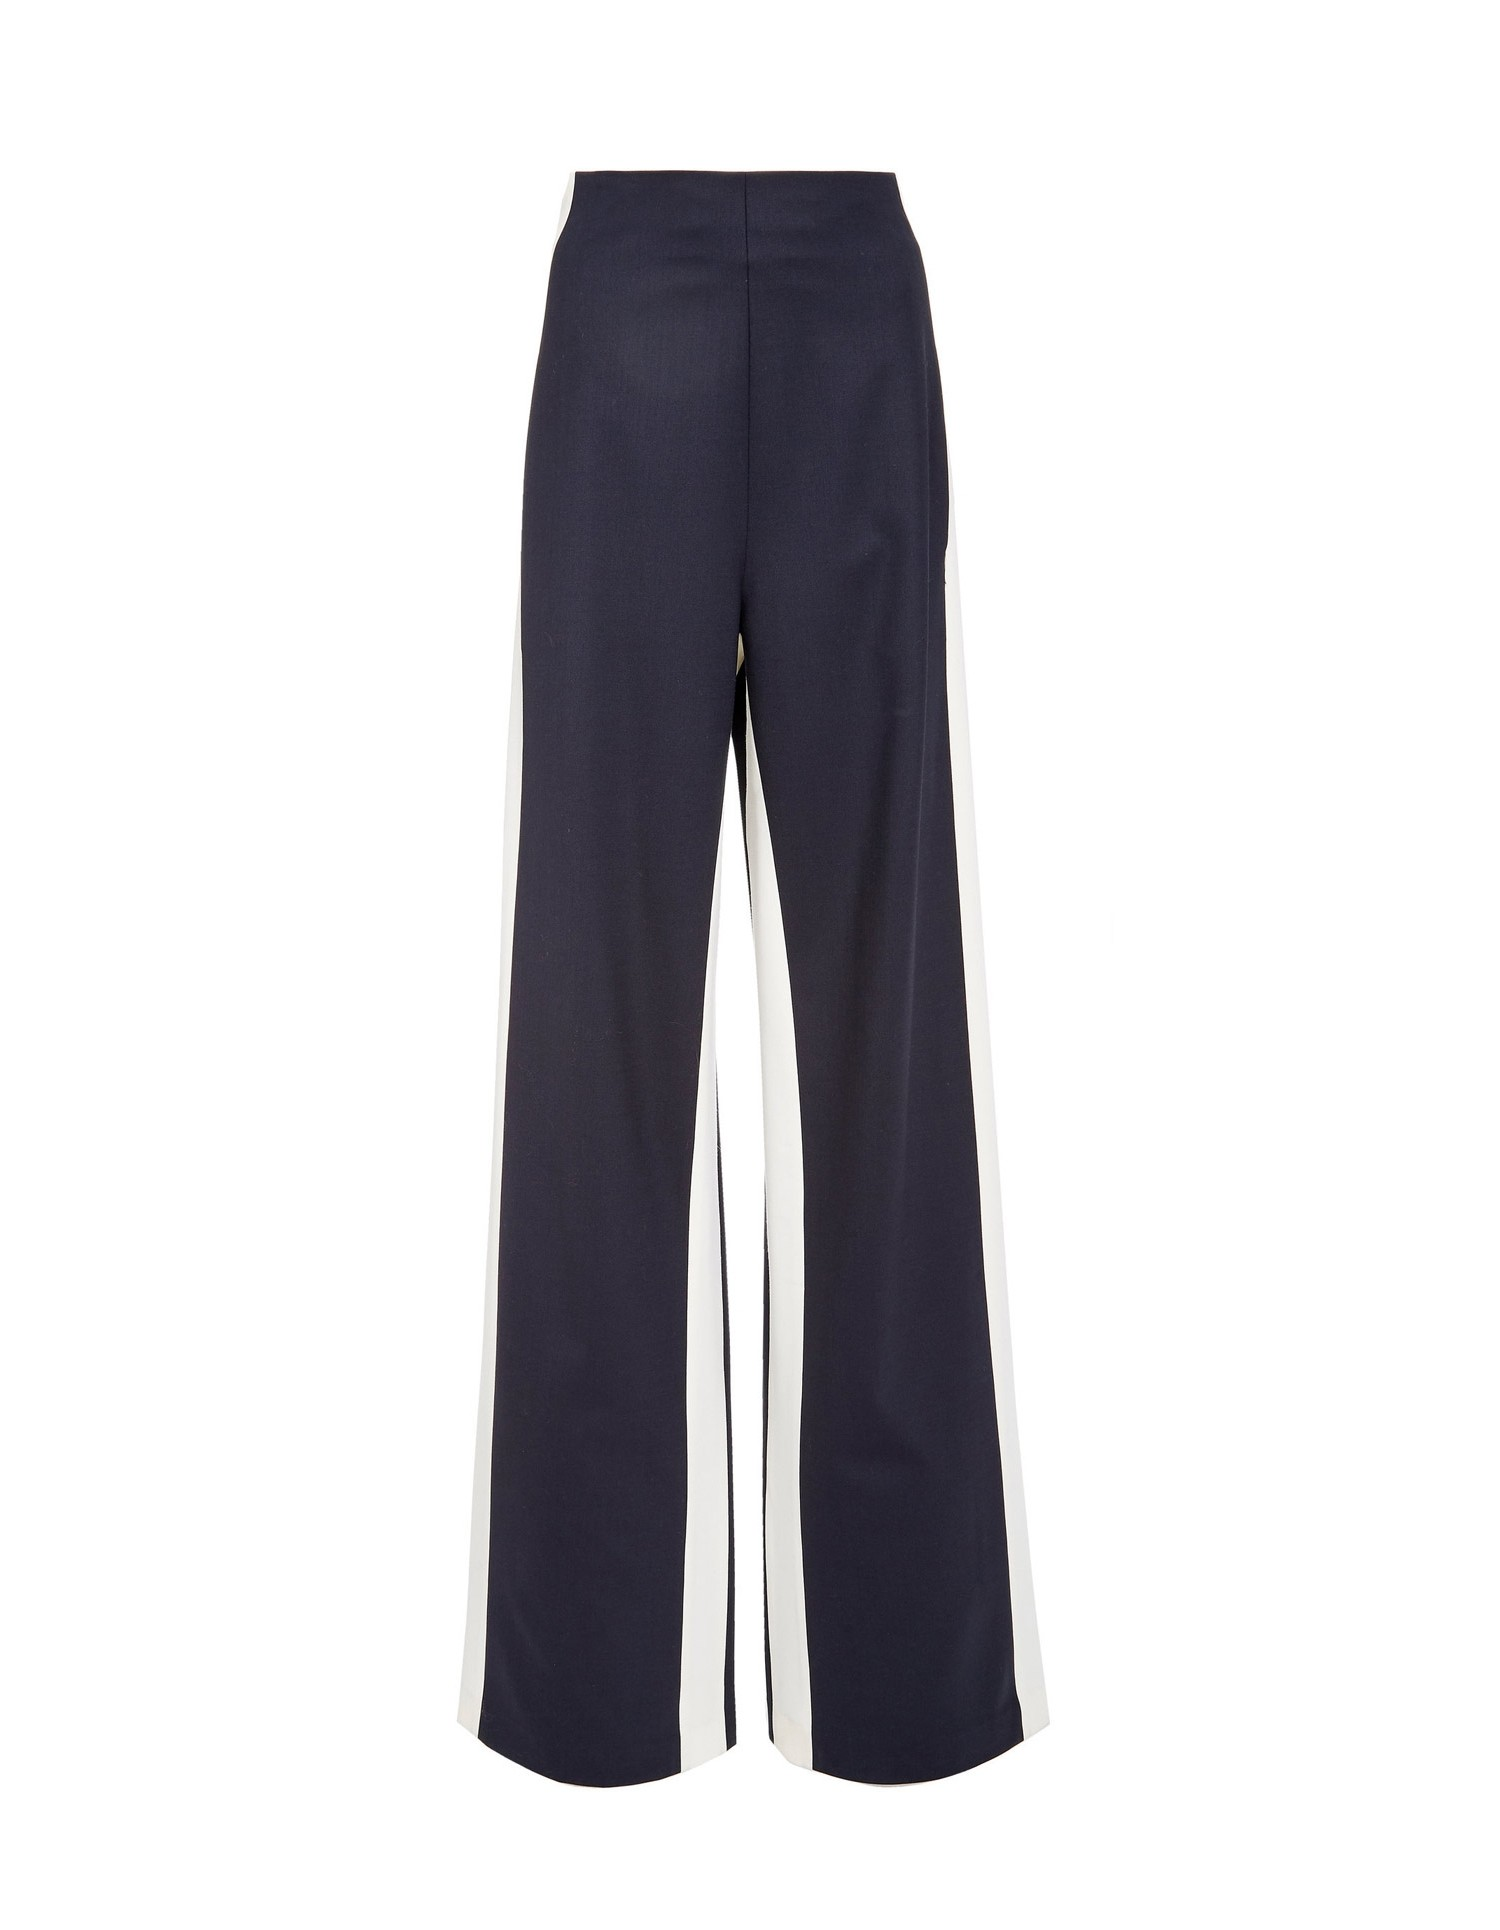 MONSE Double Stripe Gabardine Wool Pant Flat Front